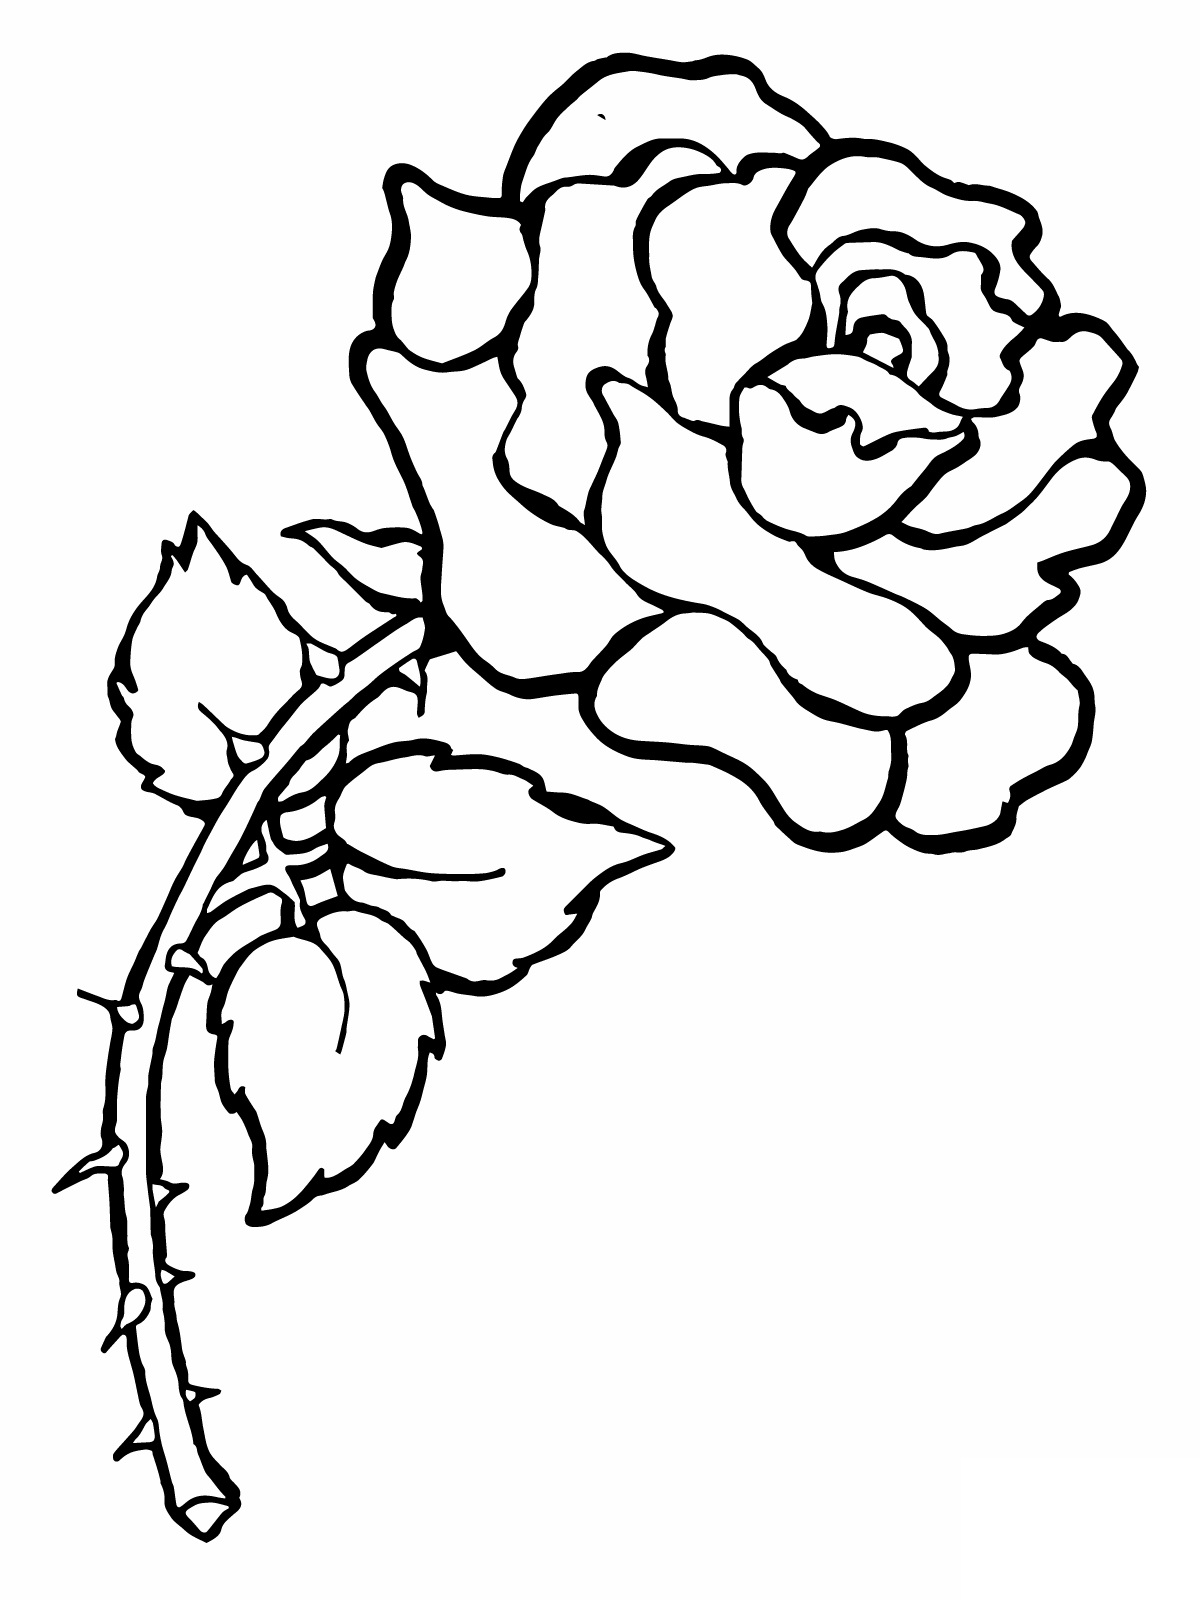 coloring book rose printable rose coloring pages for kids book coloring rose